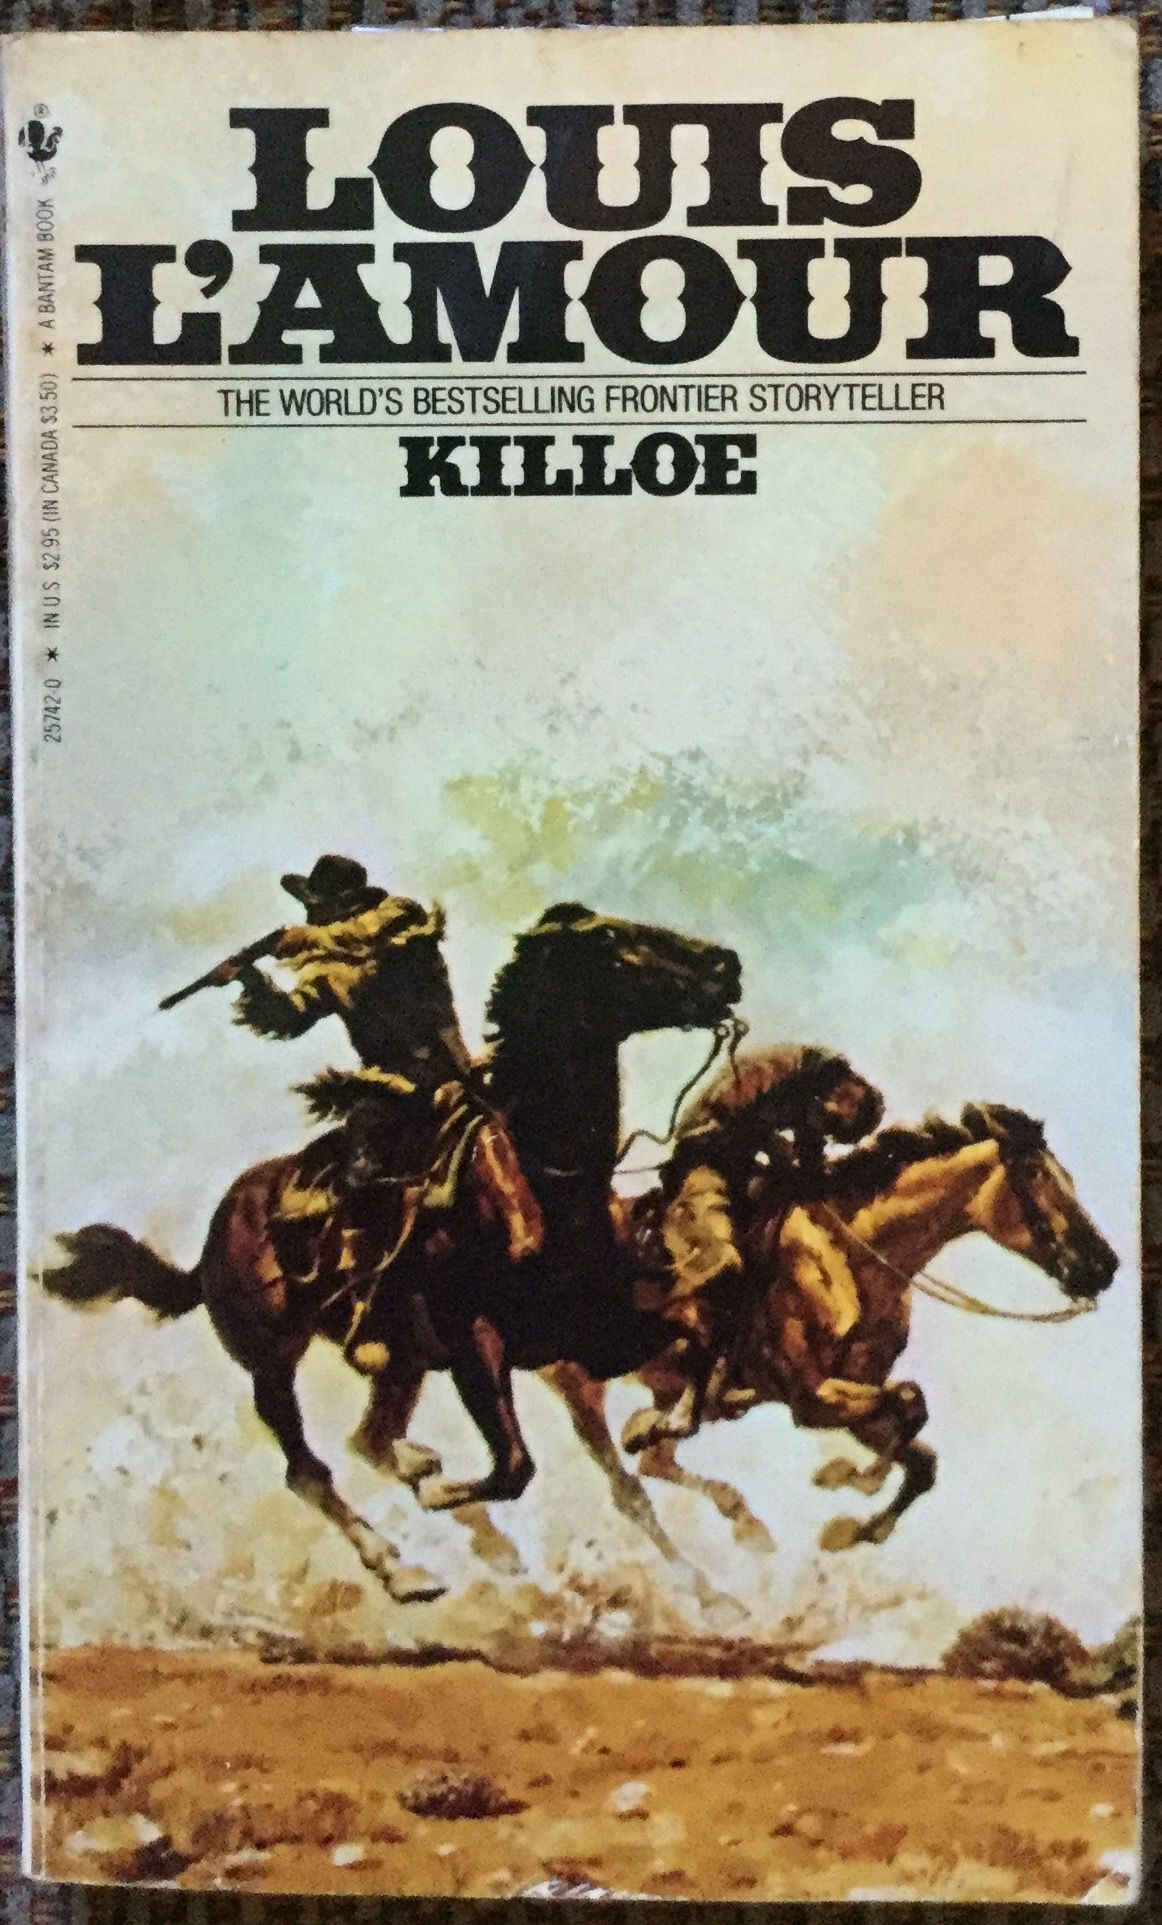 Killoe by louis lamour a paperback published by bantam